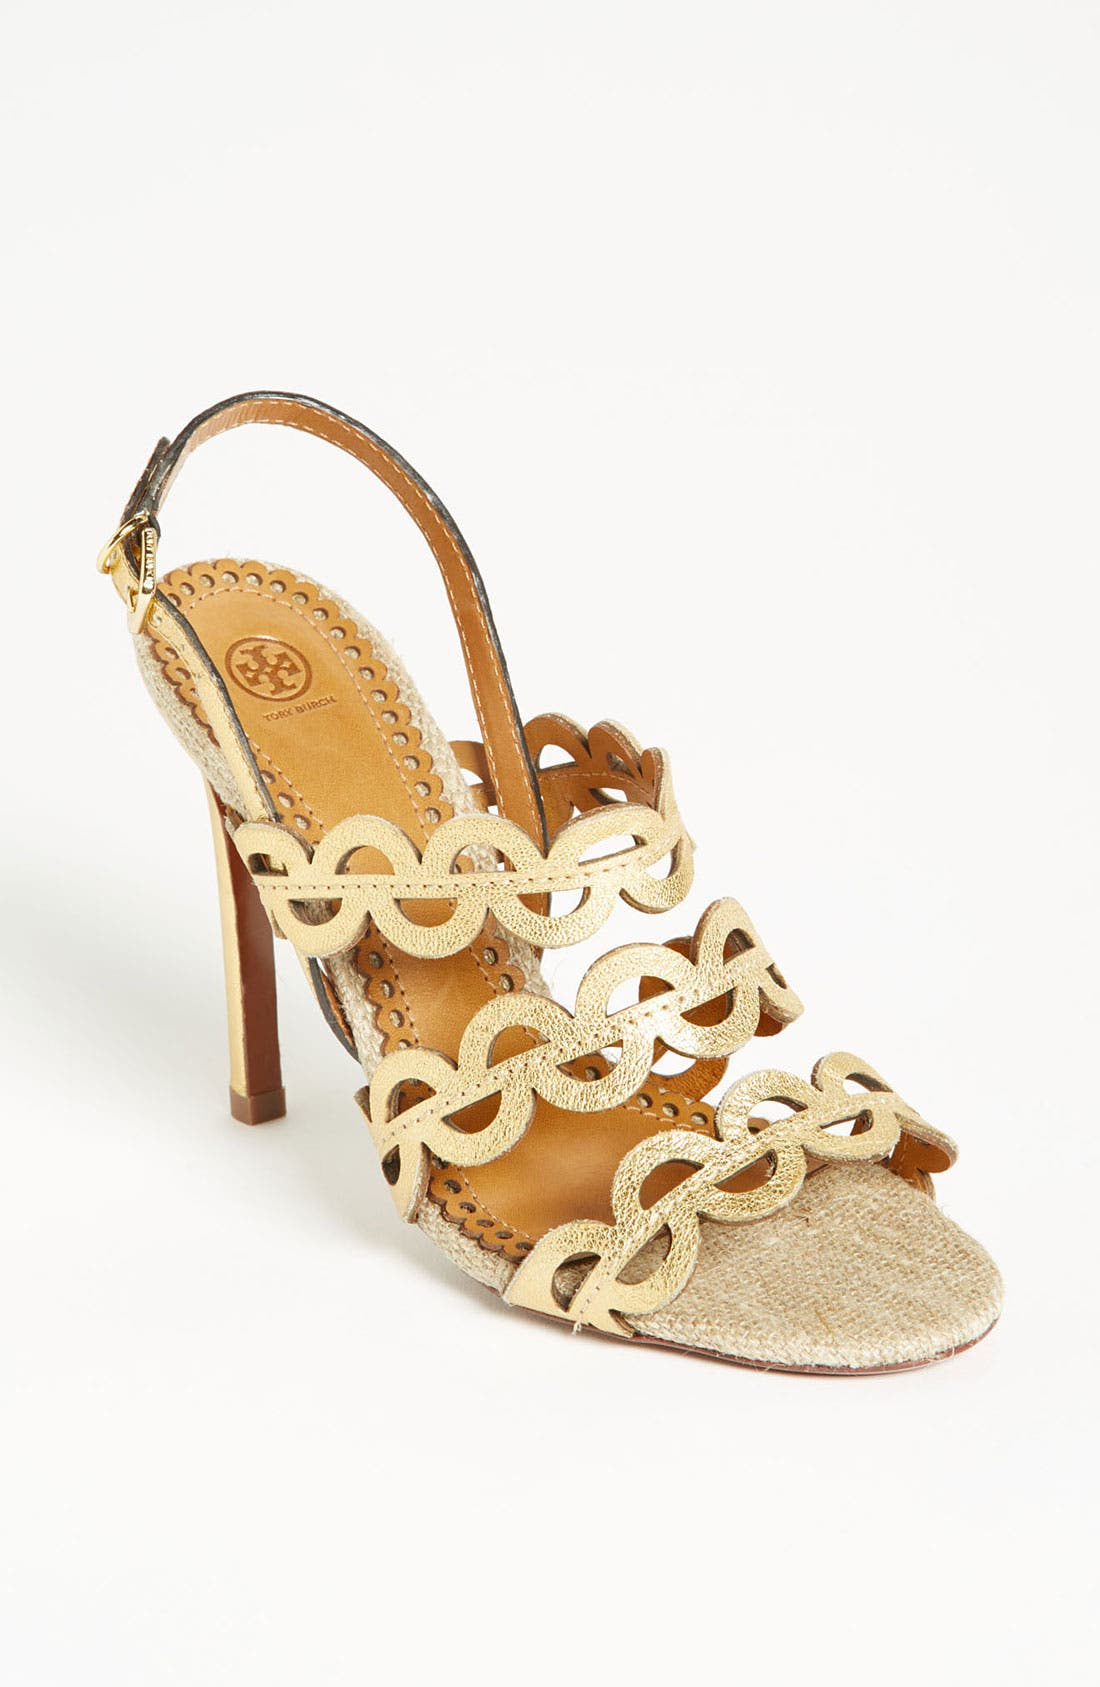 Alternate Image 1 Selected - Tory Burch 'Ginny' Sandal